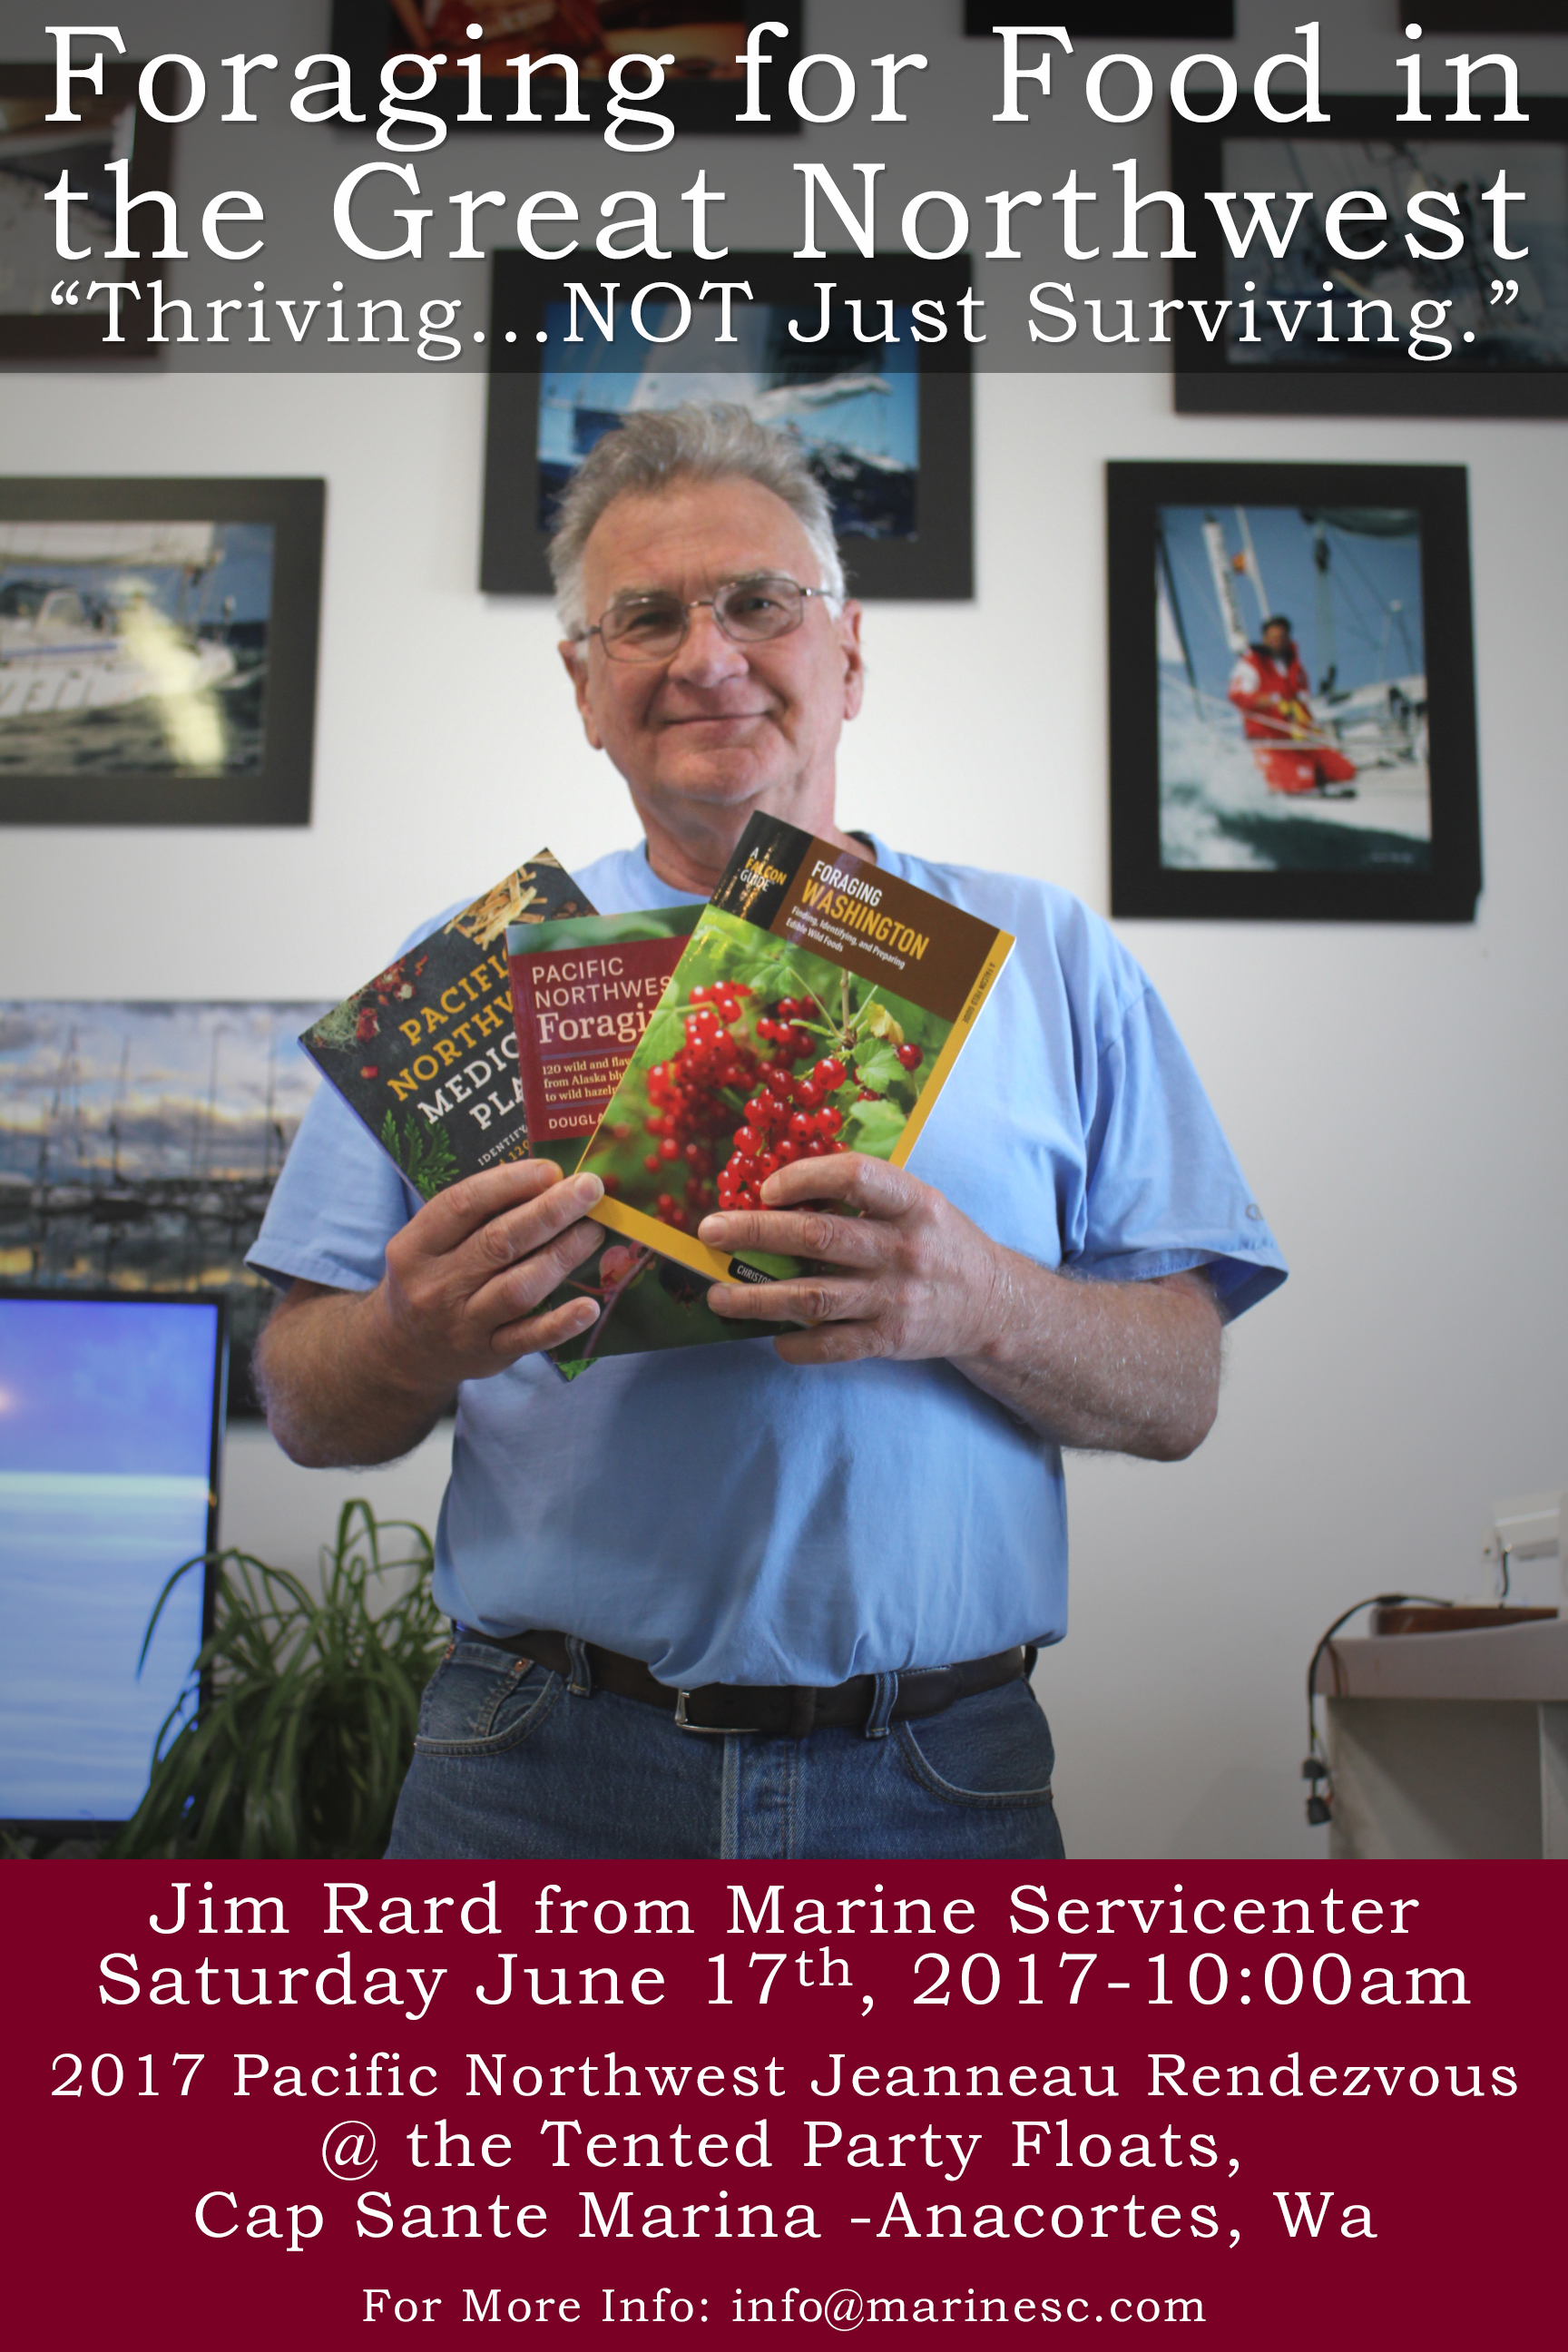 Jim Rard -Foraging for Food in the Pacific Northwest